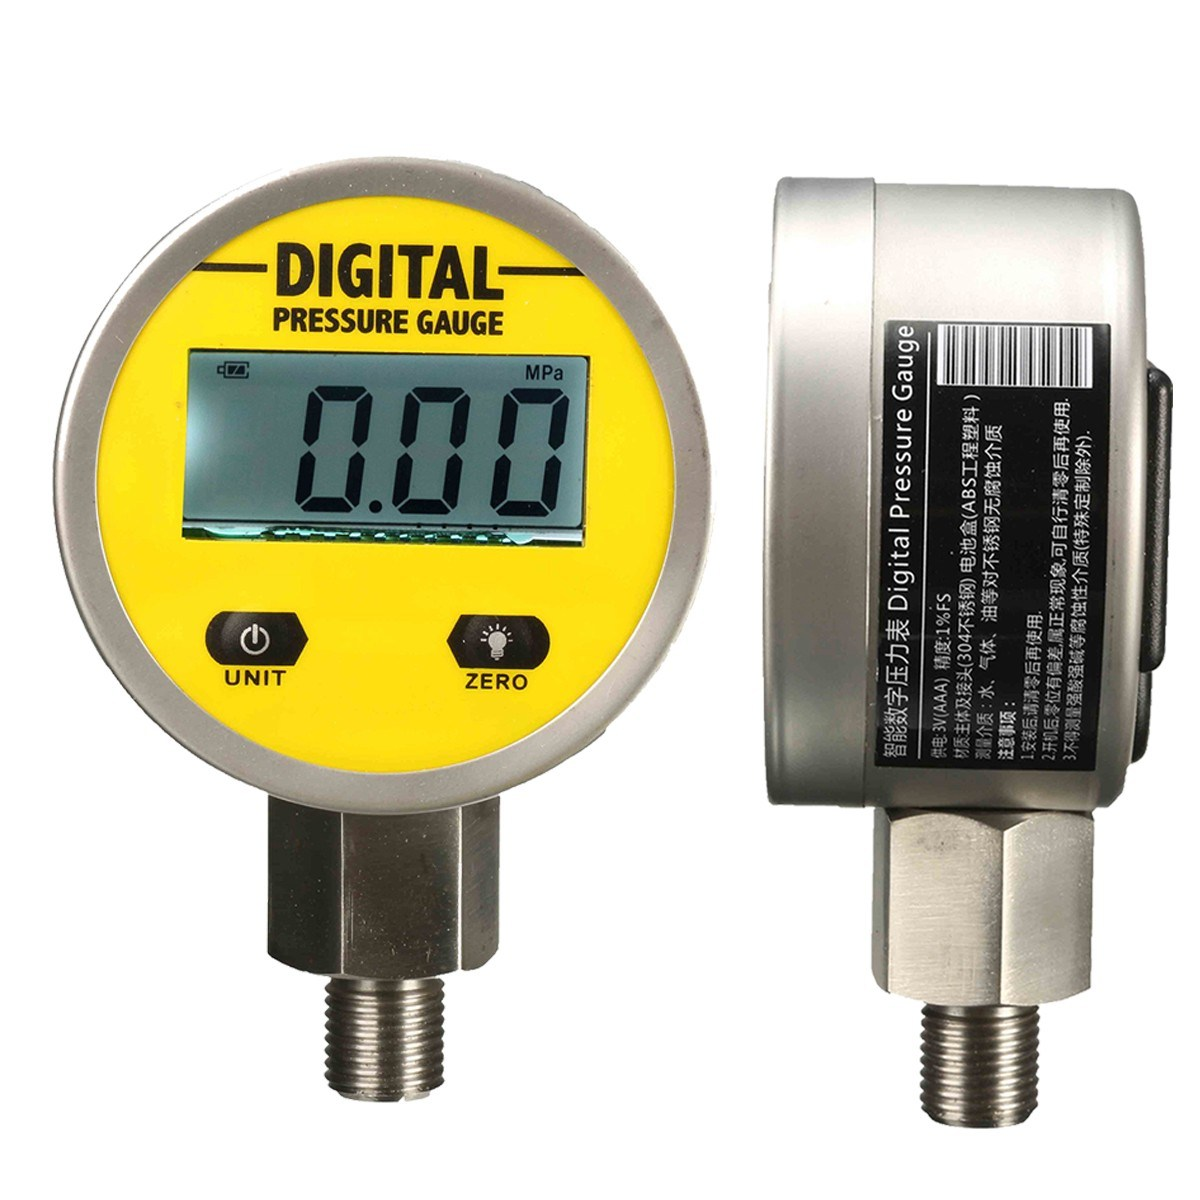 Digital Hydraulic Pressure Gauge 0-250BAR/25Mpa/3600PSI (G/4) -Base Entry sitemap 75 xml